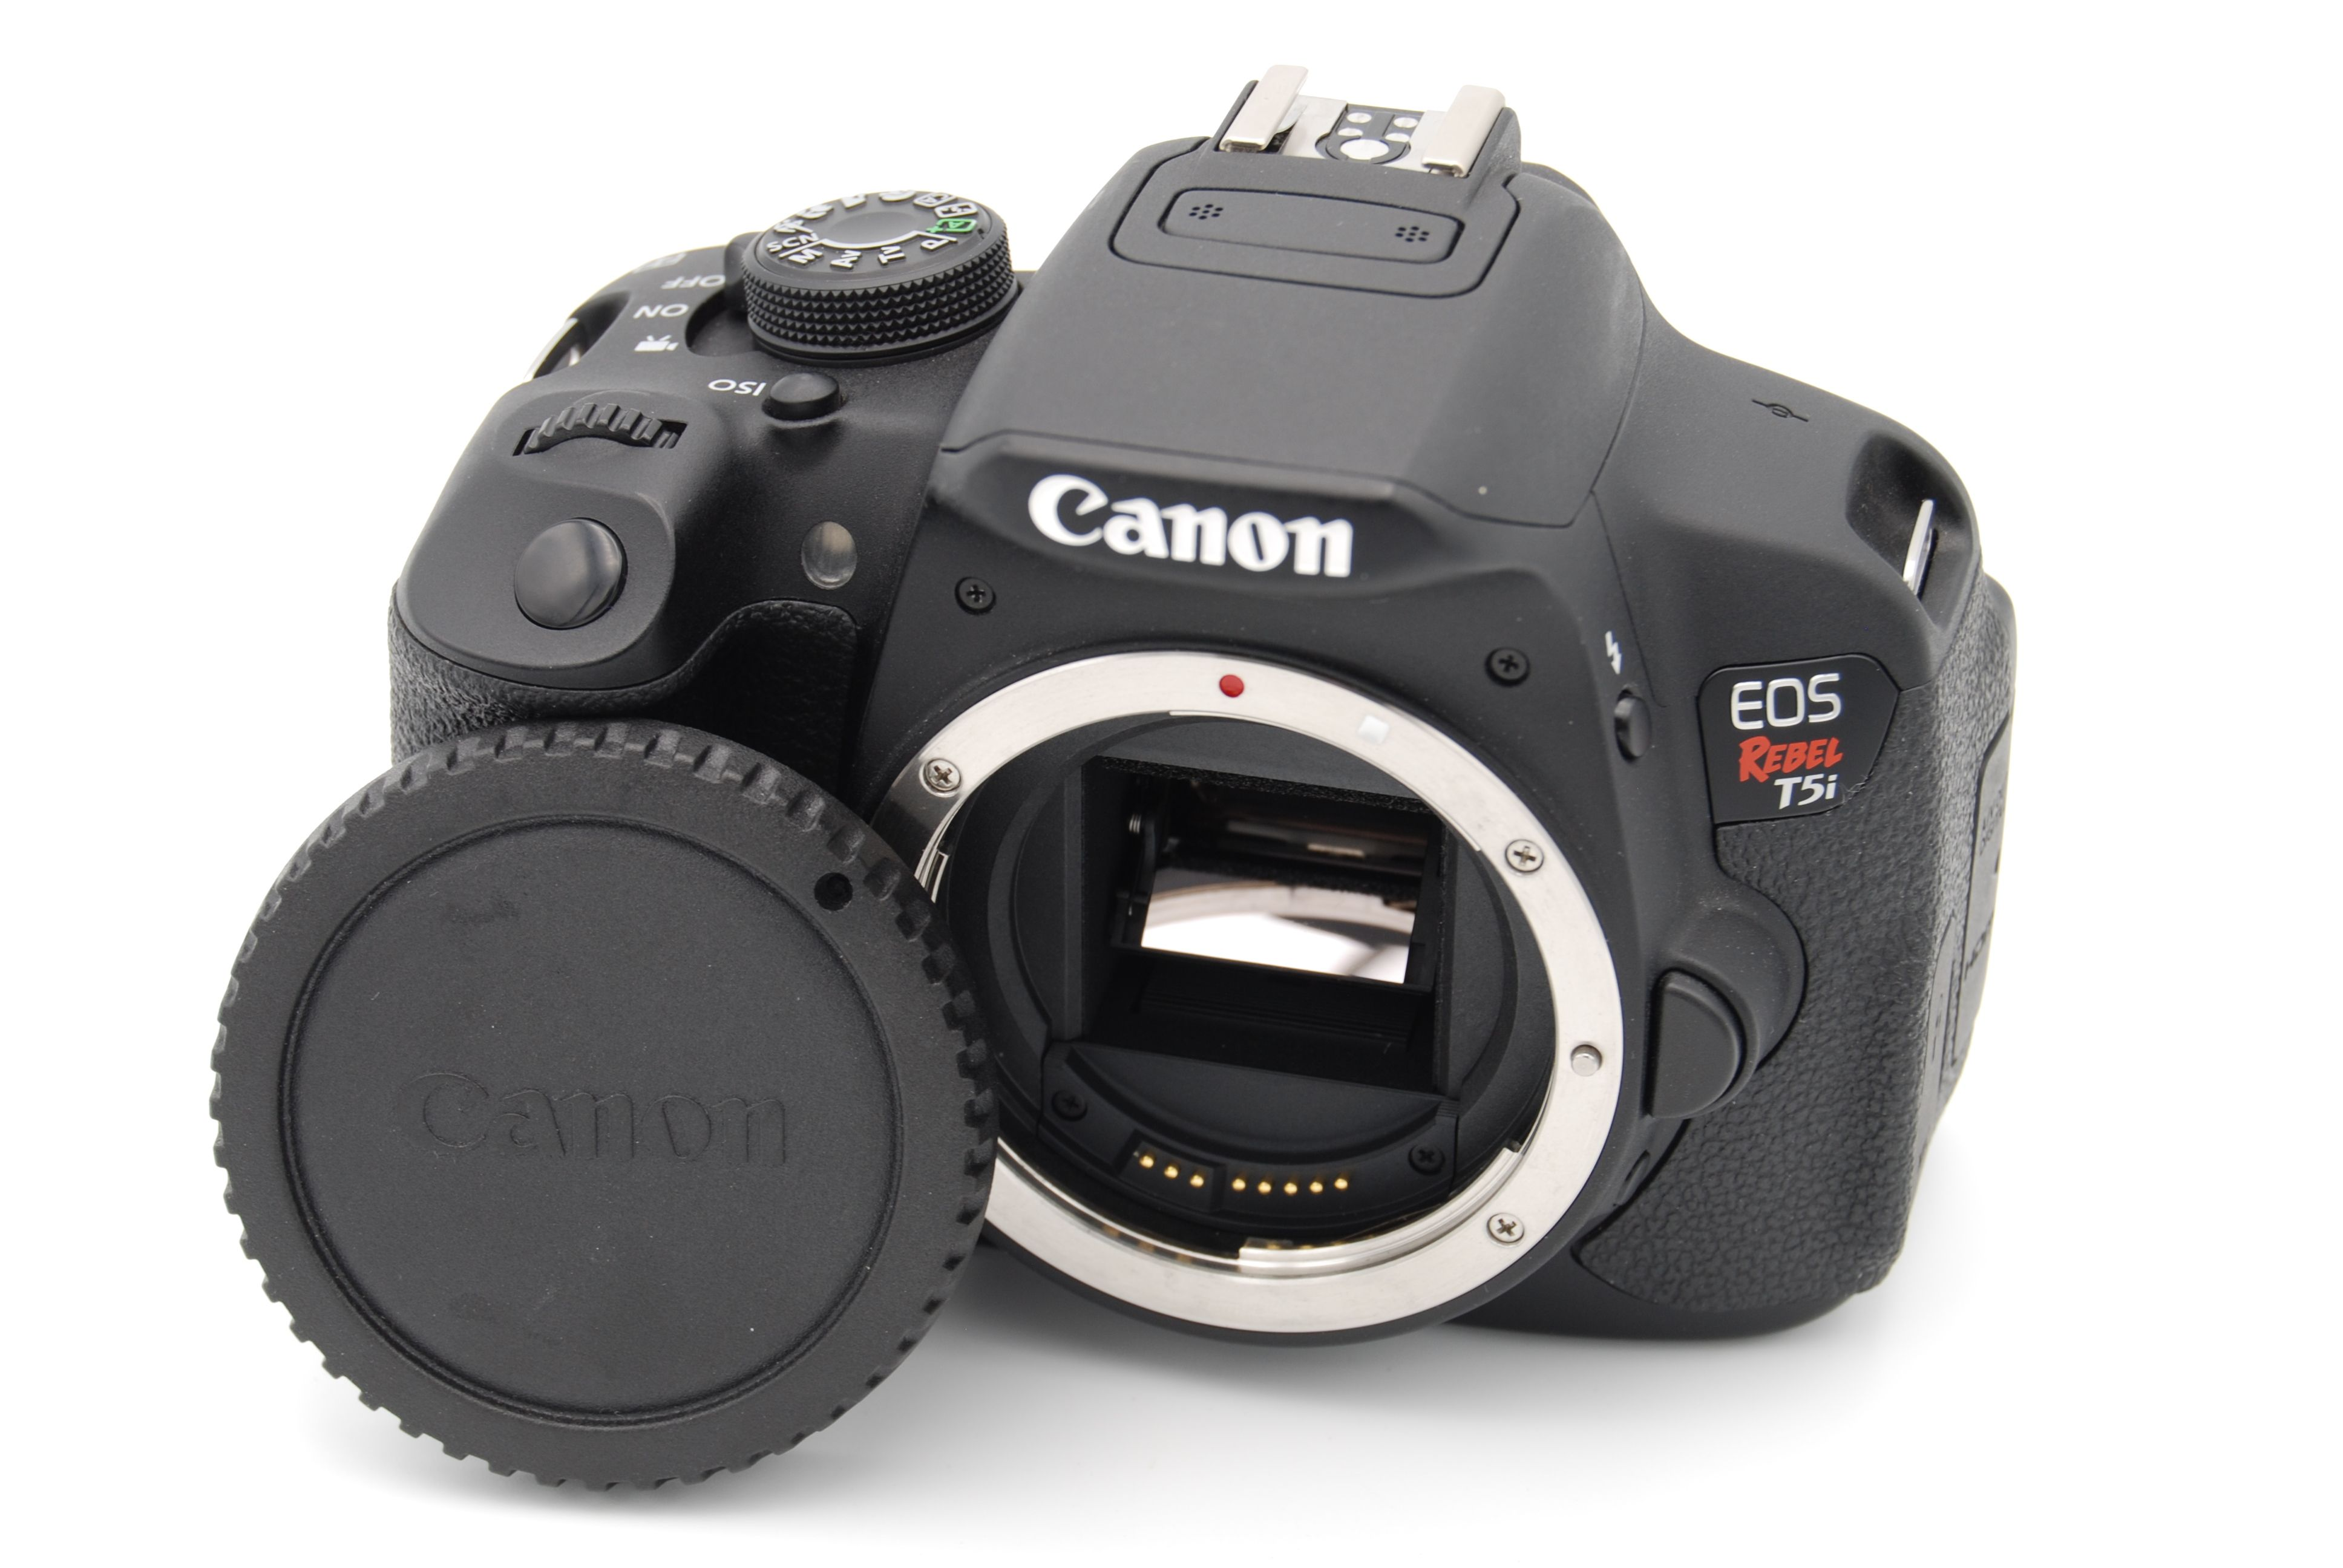 Details About Canon Eos 700d Eos Rebel T5i Eos Kiss X7i 18 Mp 3 Screen Digital Camera